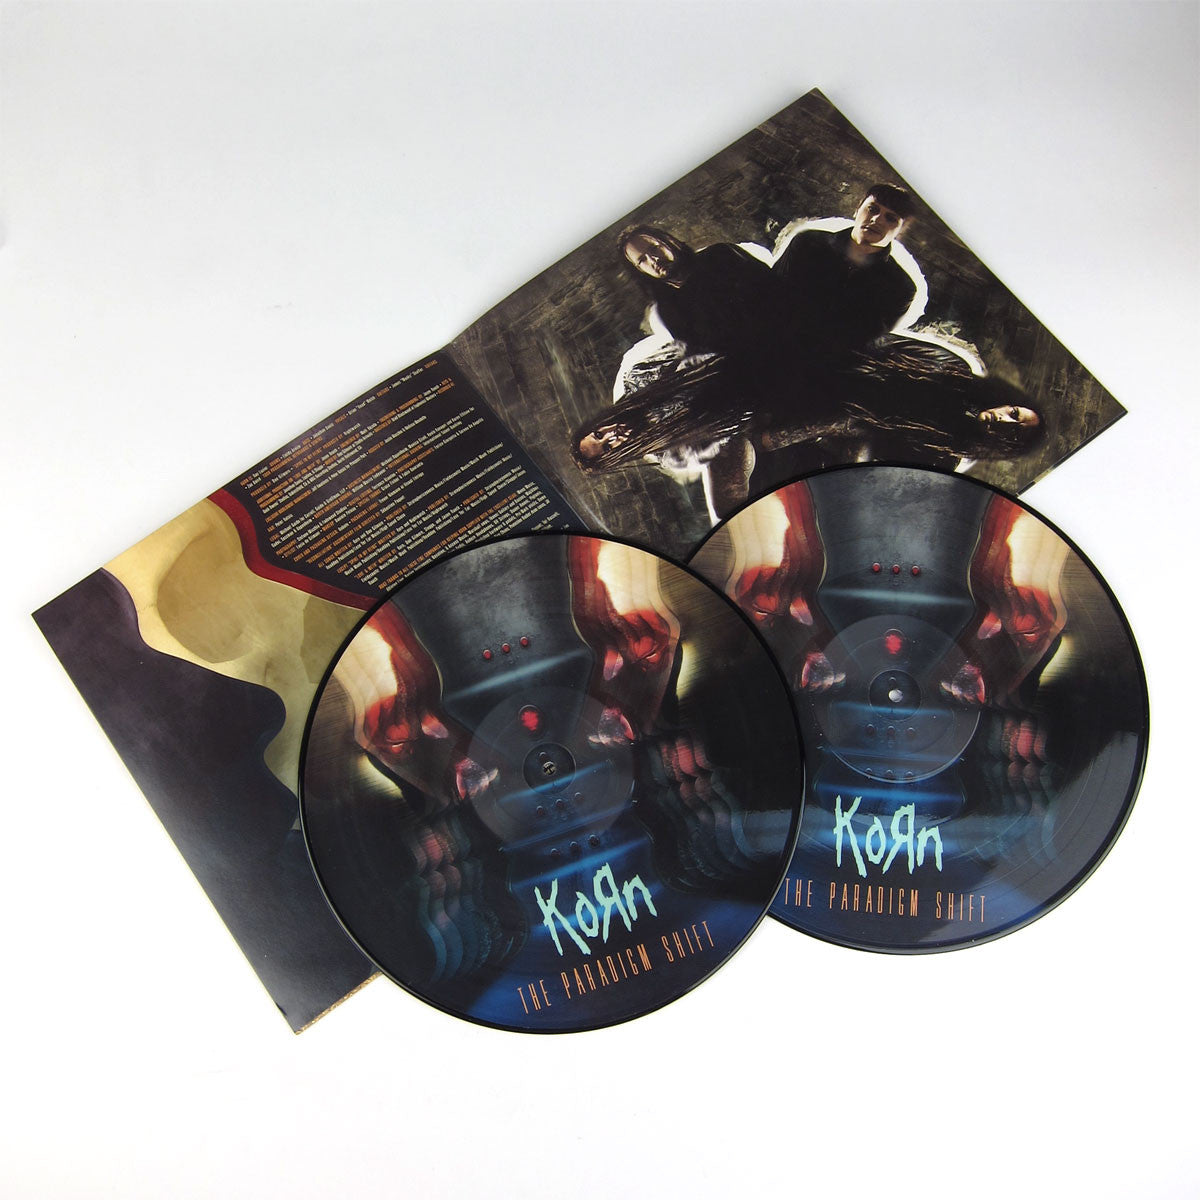 Korn: The Paradigm Shift (Picture Disc) Vinyl LP (Record Store Day)